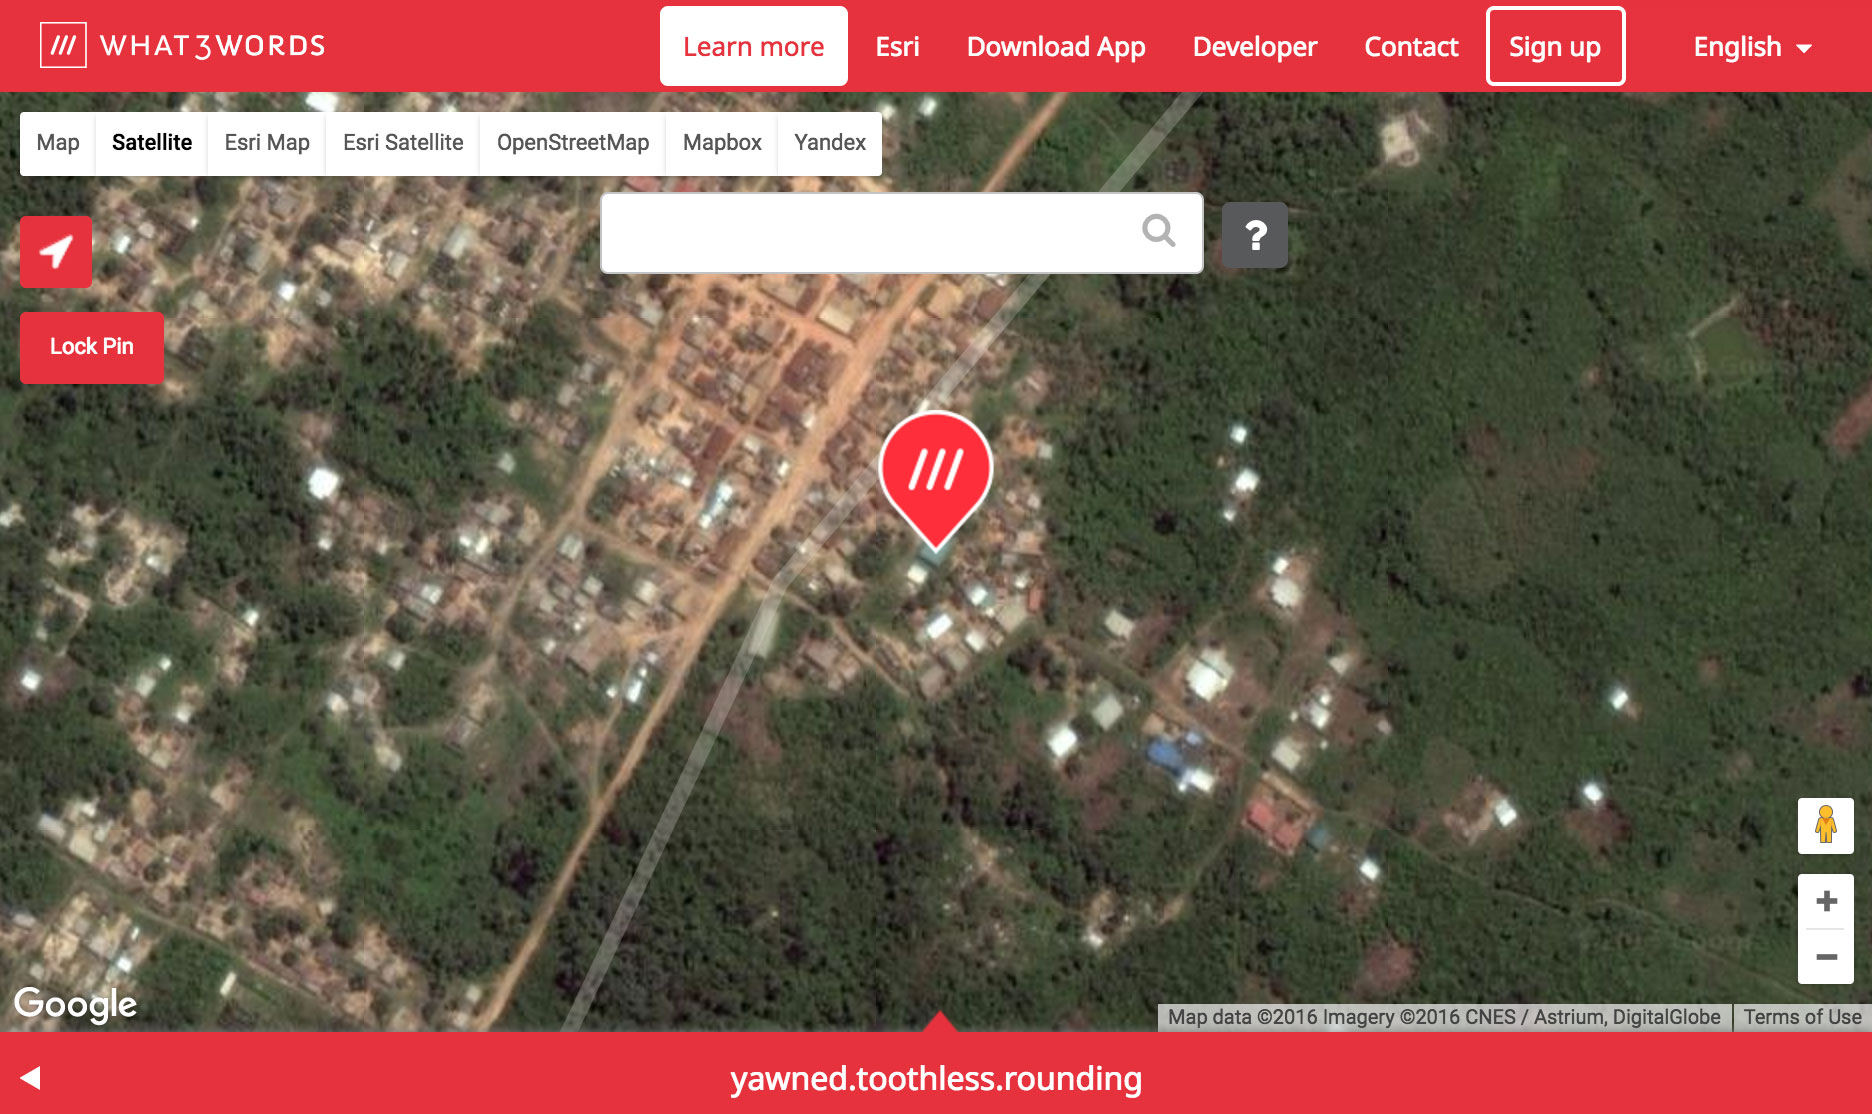 The What3words address of heaven.mallard.houseguests points to one particular structure on the outskirts of Mberie in the African country of Ivory Coast.